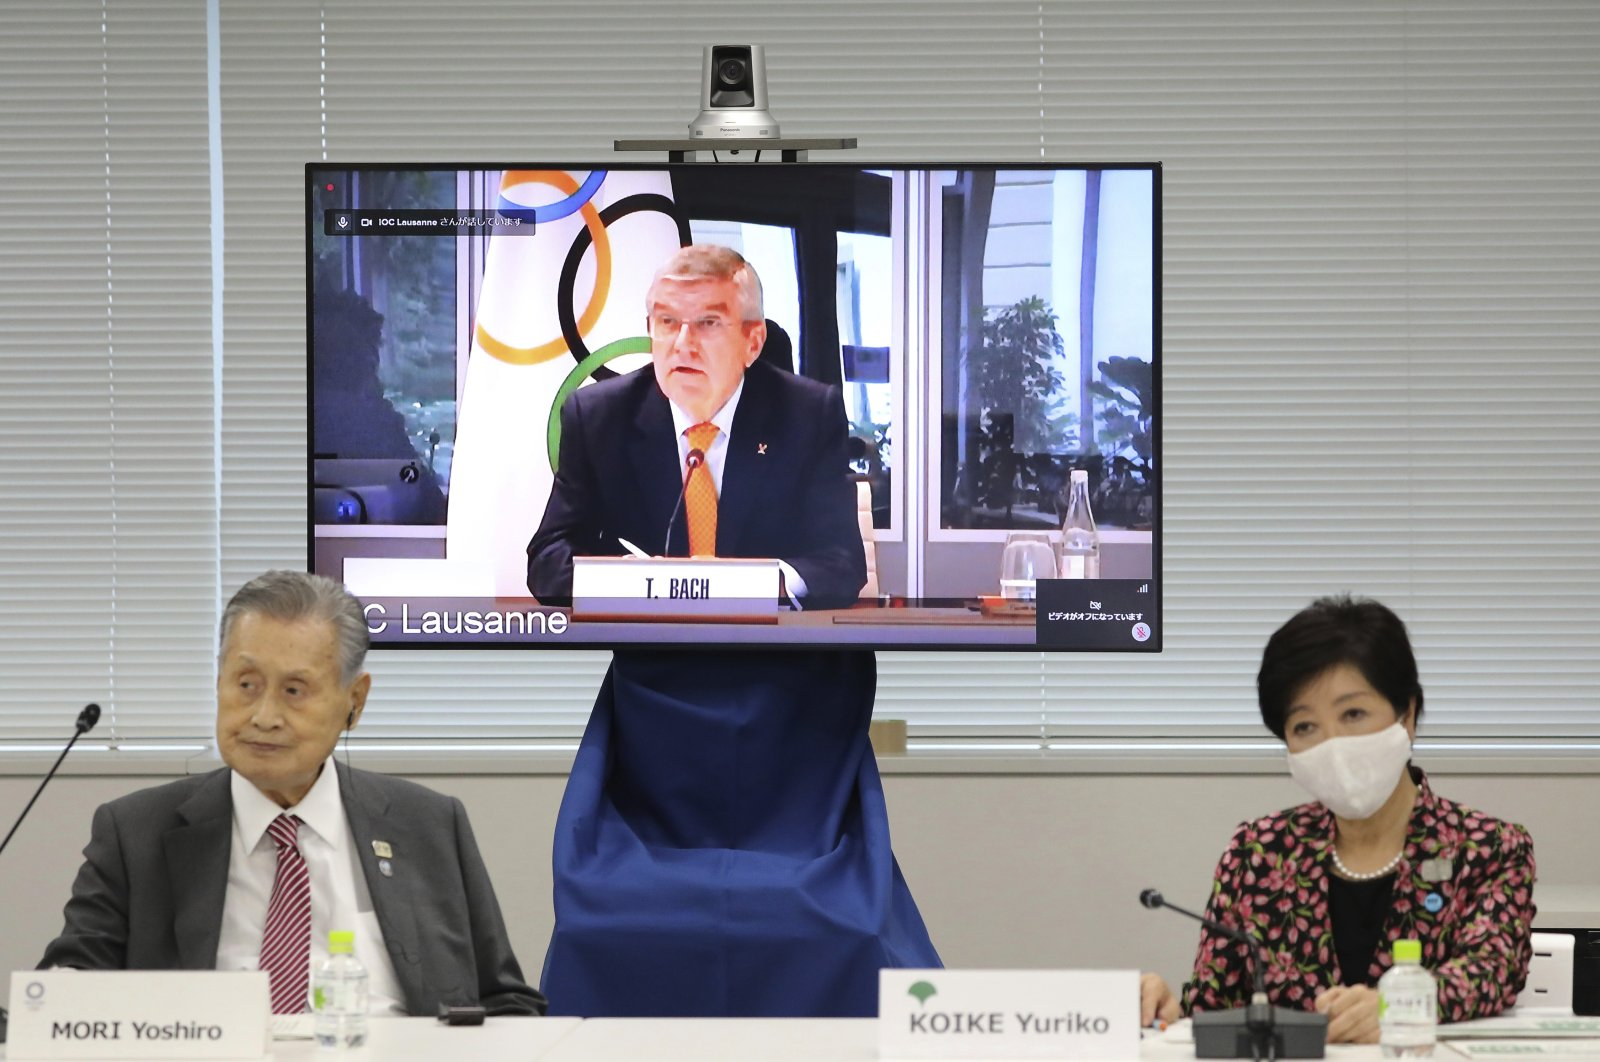 IOC President Thomas Bach, on the screen, speaks remotely with Tokyo 2020 Organizing Committee President Yoshiro Mori (L) and Tokyo Gov. Yuriko Koike, during an online meeting, in Tokyo, Japan, Sept. 24, 2020. (AP Photo)